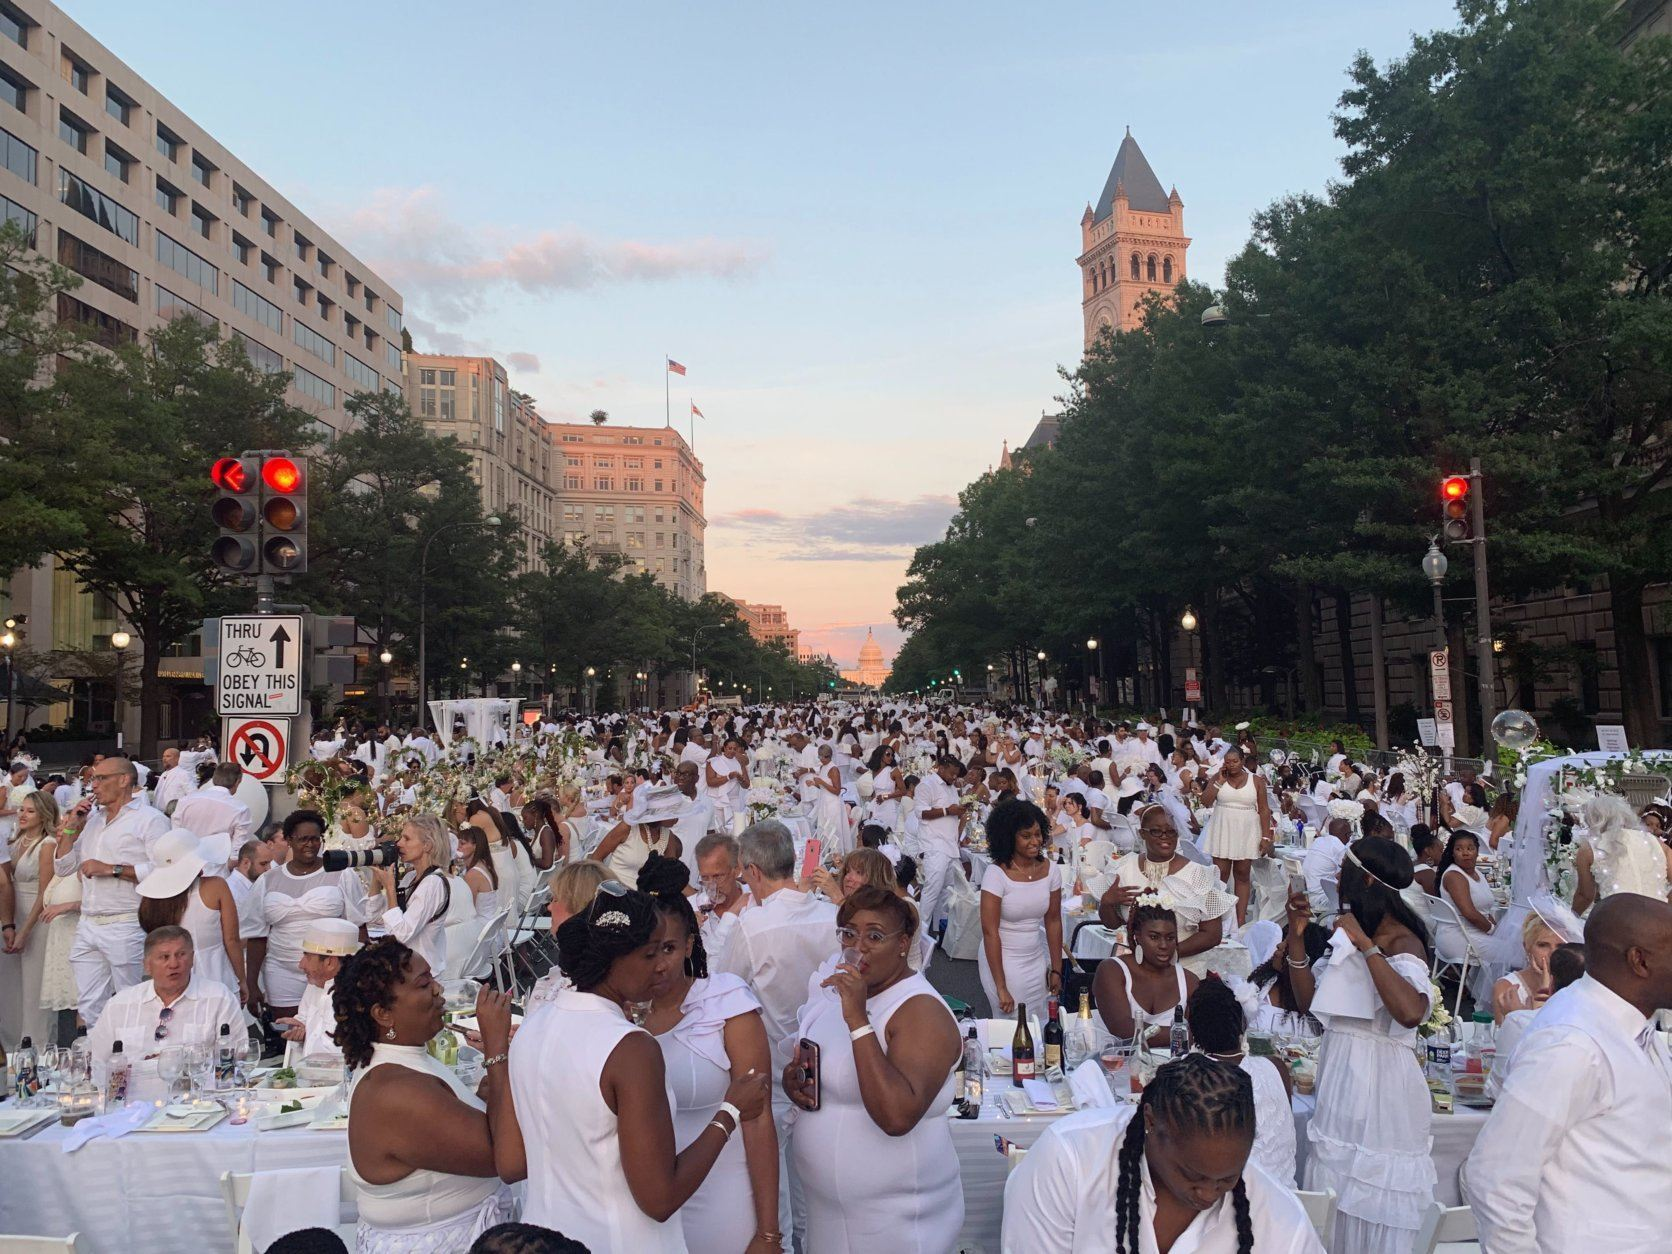 <p>Jared Evans, of D.C.&#8217;s Brookland neighborhood, is a veteran attendee. He said he was disappointed with last year&#8217;s party at Nats Park.</p> <p>&#8220;Compared to last year, this year is 100% better,&#8221; he said. Evans, dressed in an all-white romper with short pants, said he was looking forward to the event and he couldn&#8217;t have been happier with how it turned out. &#8220;To have this environment, see all this excellence, all this black excellence in D.C., it&#8217;s just a great experience. We&#8217;re right here on Pennsylvania Avenue, America&#8217;s Avenue, having an all-white dinner. You can&#8217;t buy this experience.&#8221;</p>